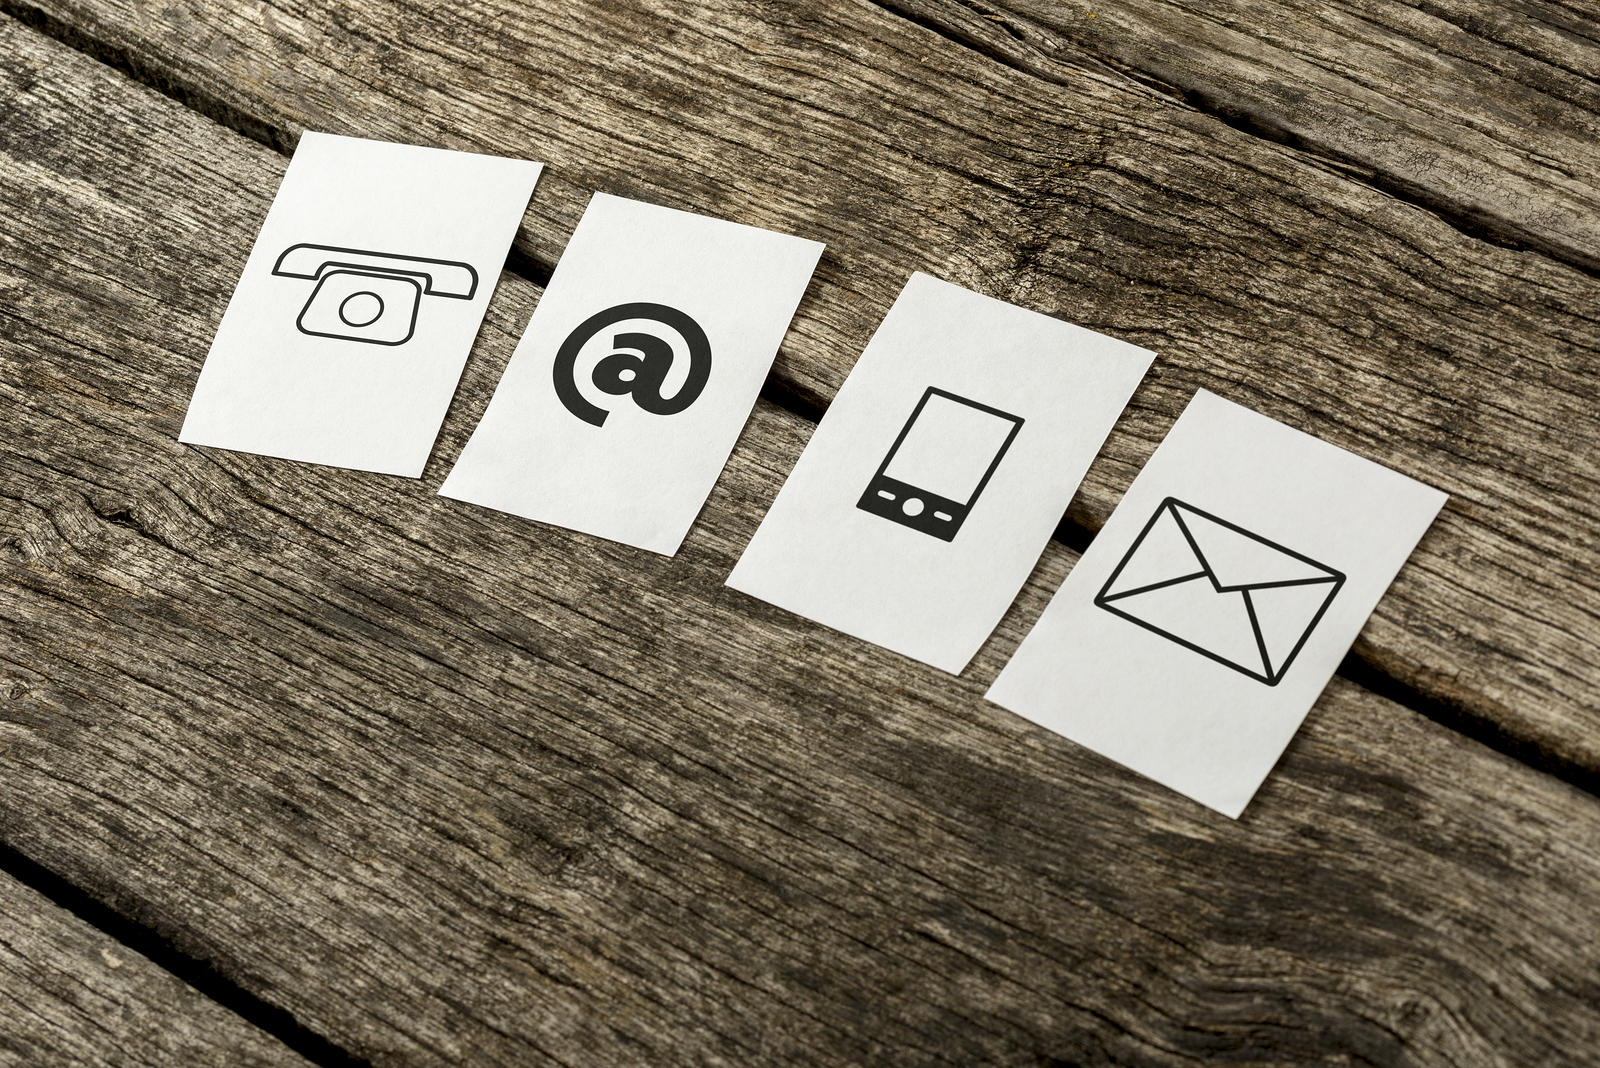 bigstock-Contact-And-Communication-Icon-103890983.jpg